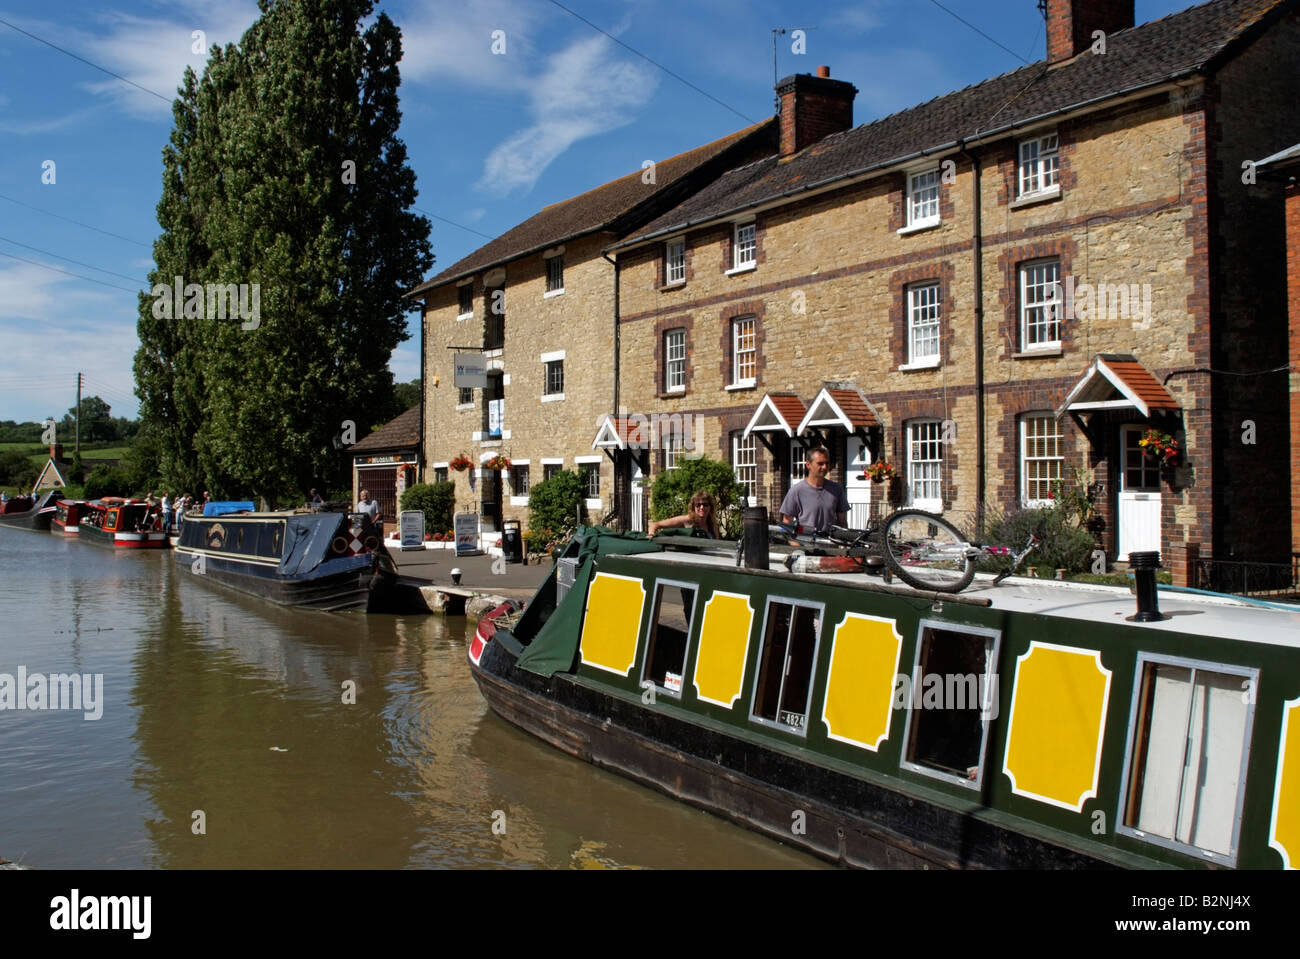 Narrowboats at Stoke Bruerne Grand Union Canal Northamptonshire England - Stock Image